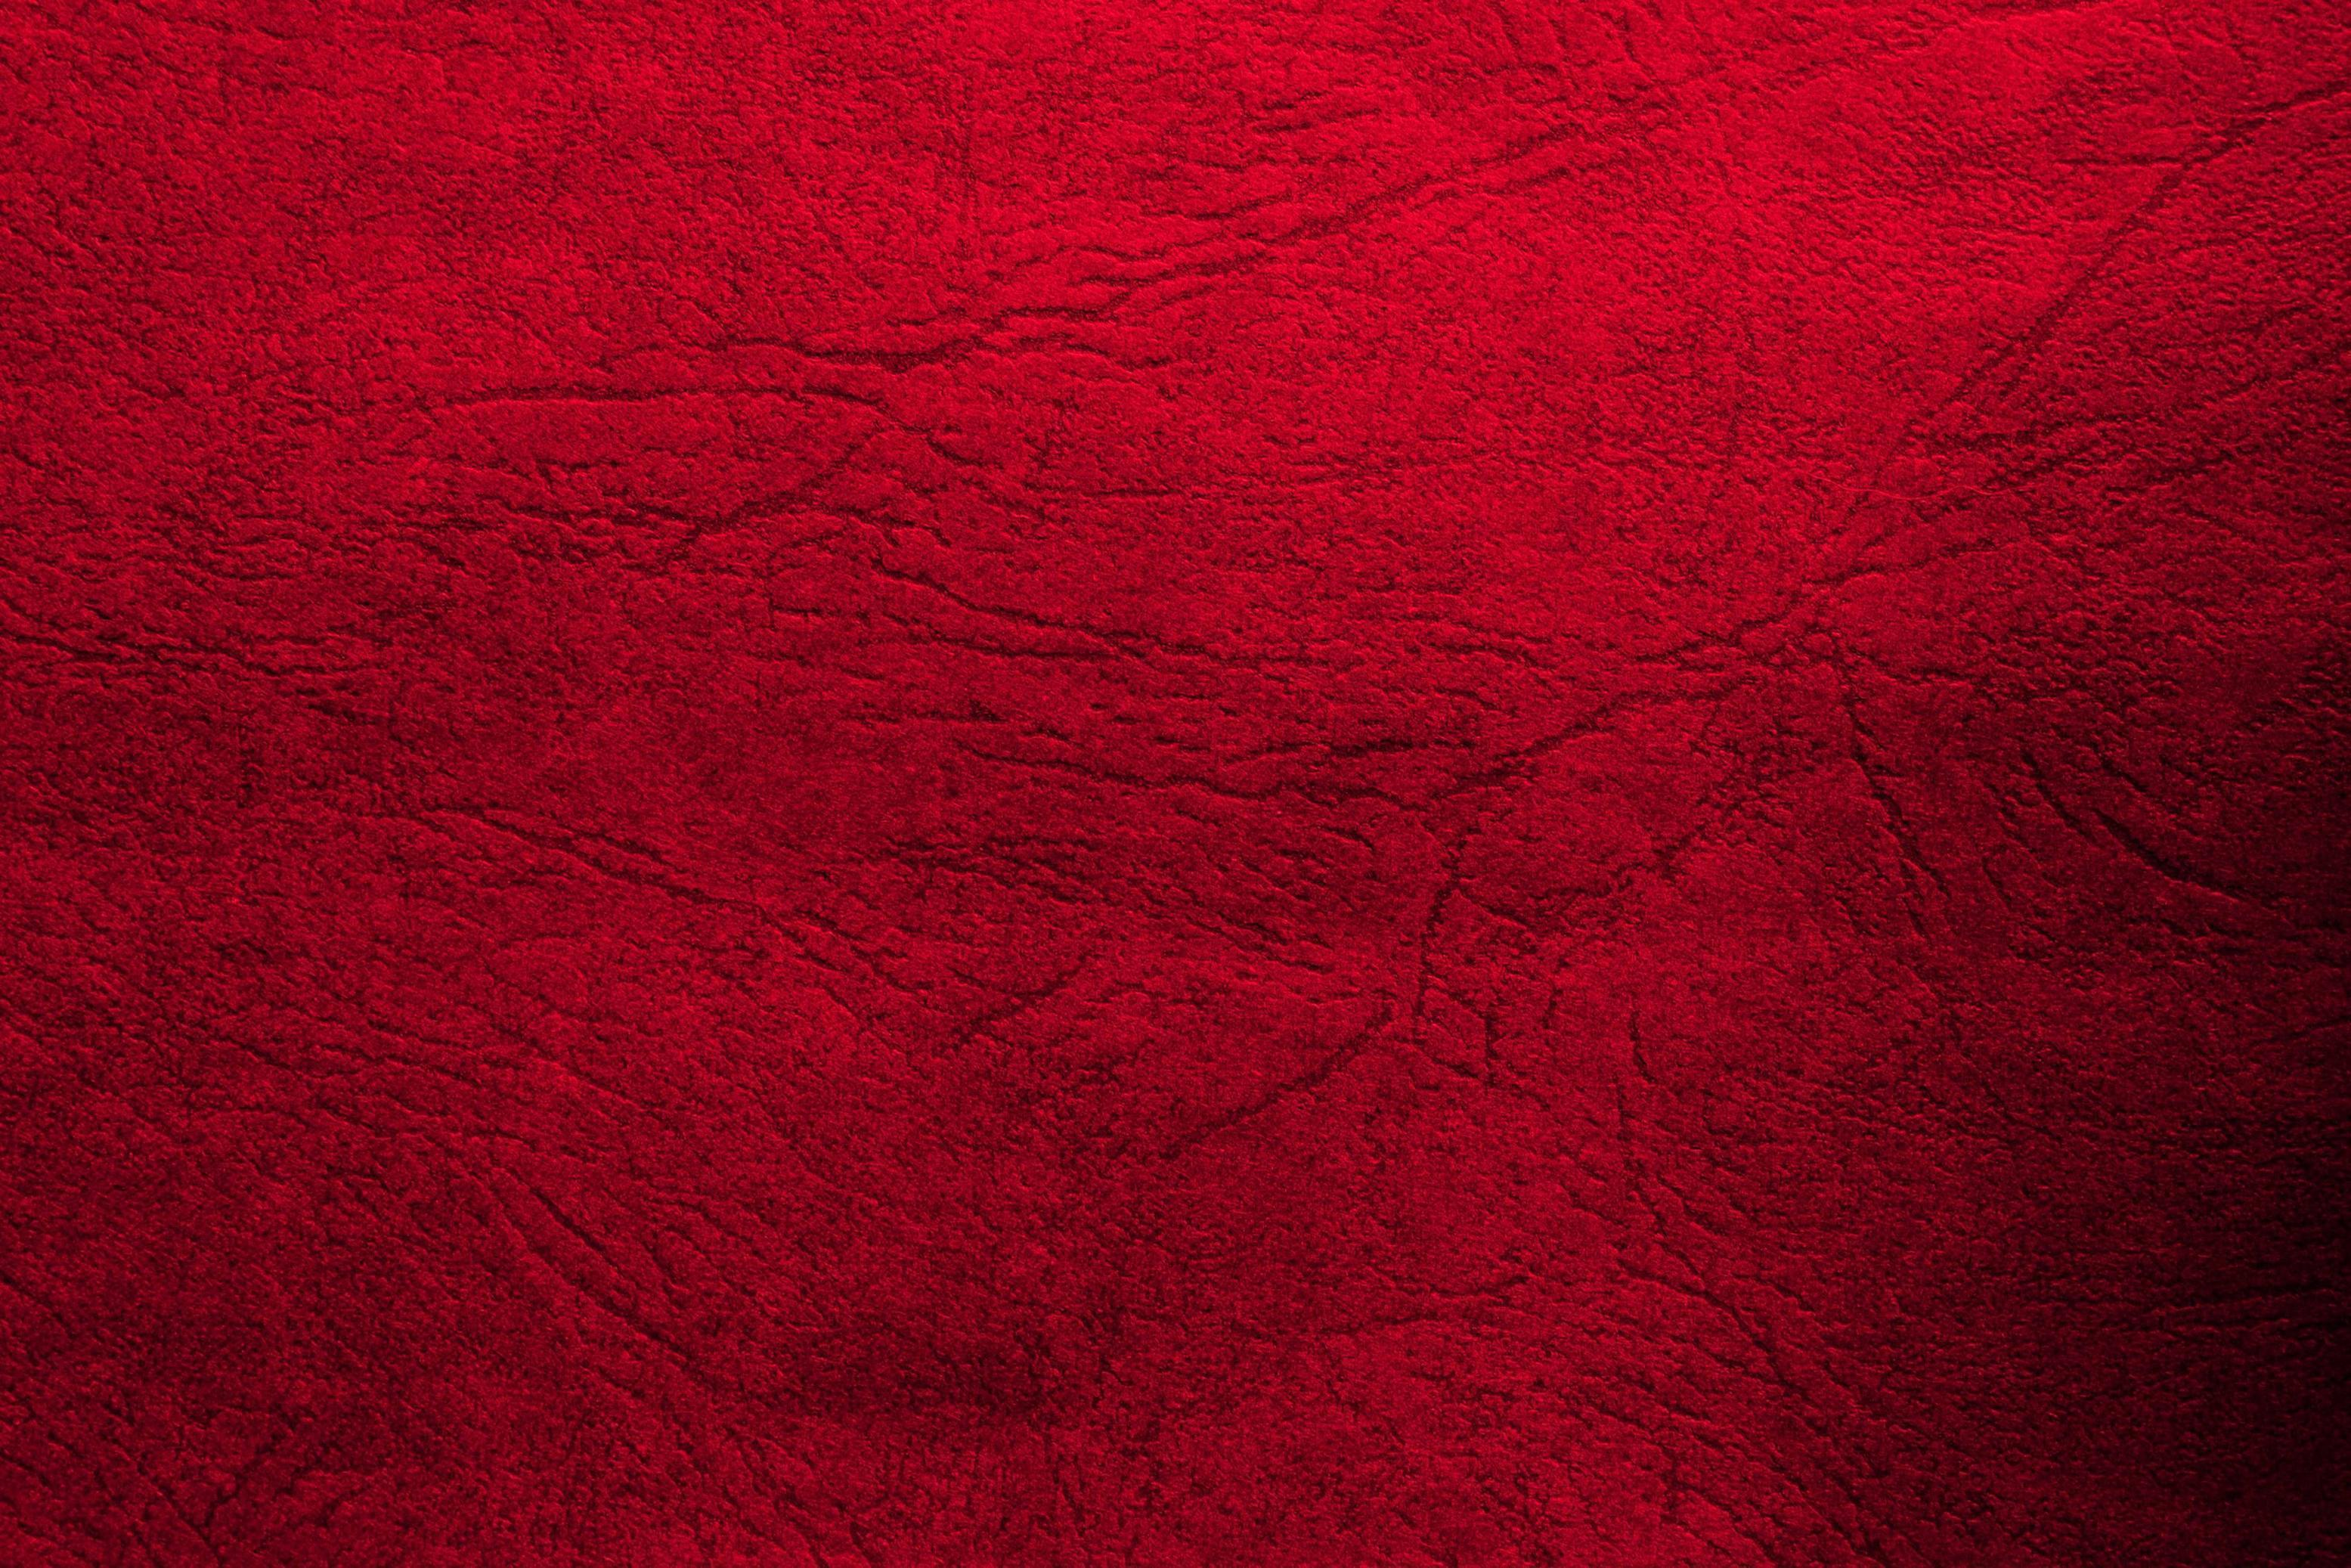 red textured background hd - photo #4